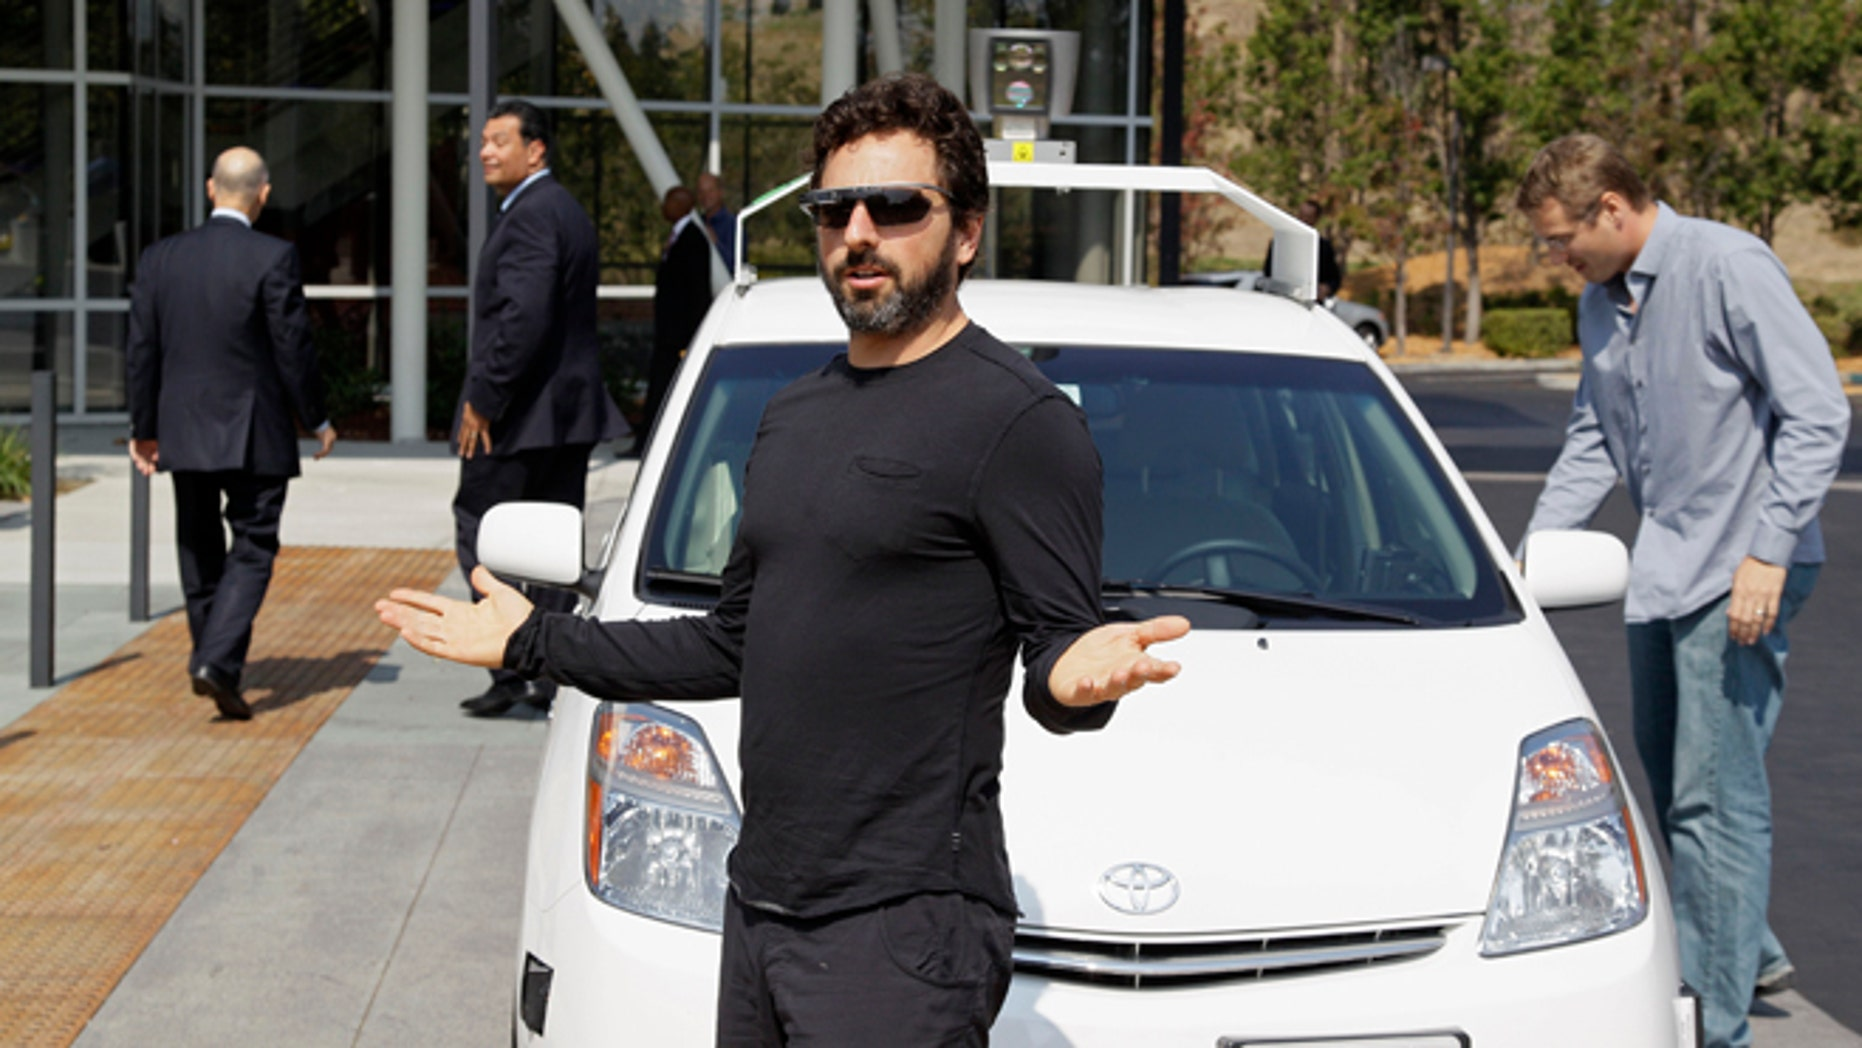 Sept. 25, 2012: Google co-founder Sergey Brin gestures after riding in a driverless car with California Gov. Jerry Brown, left, and state Sen. Alex Padilla, second from left.